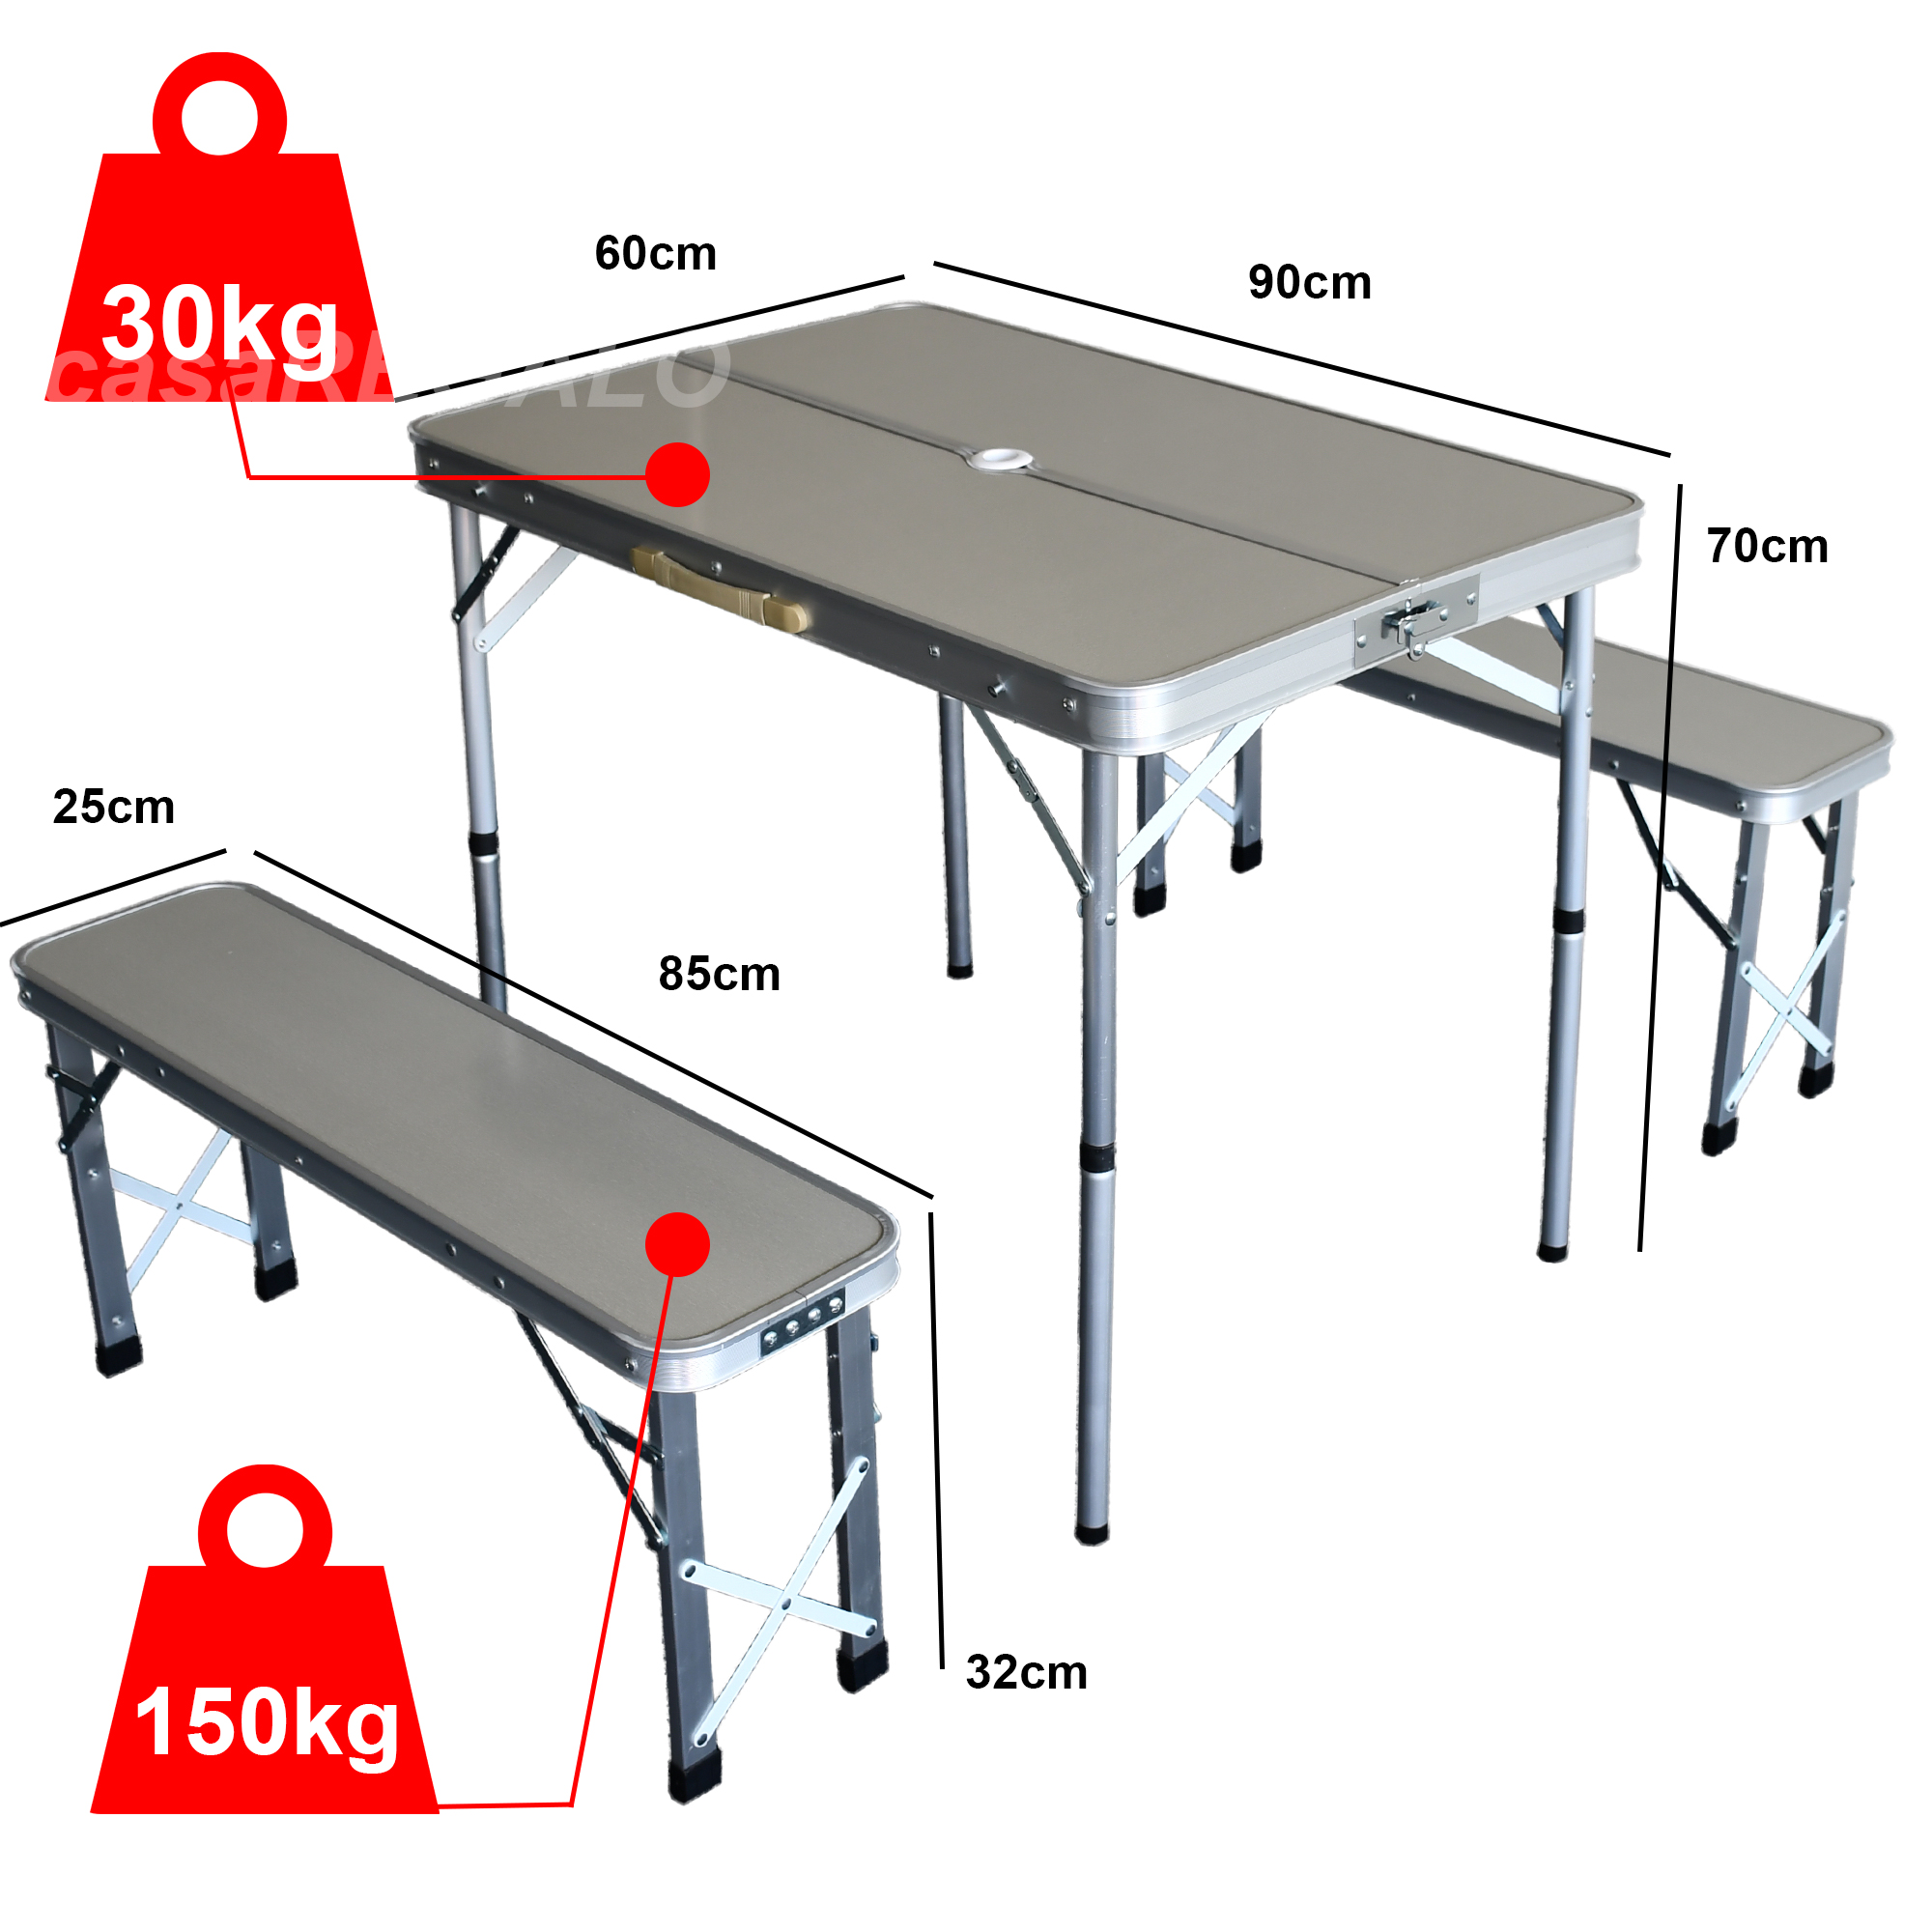 Outdoor Aluminium Folding Camping Table And Chairs Picnic